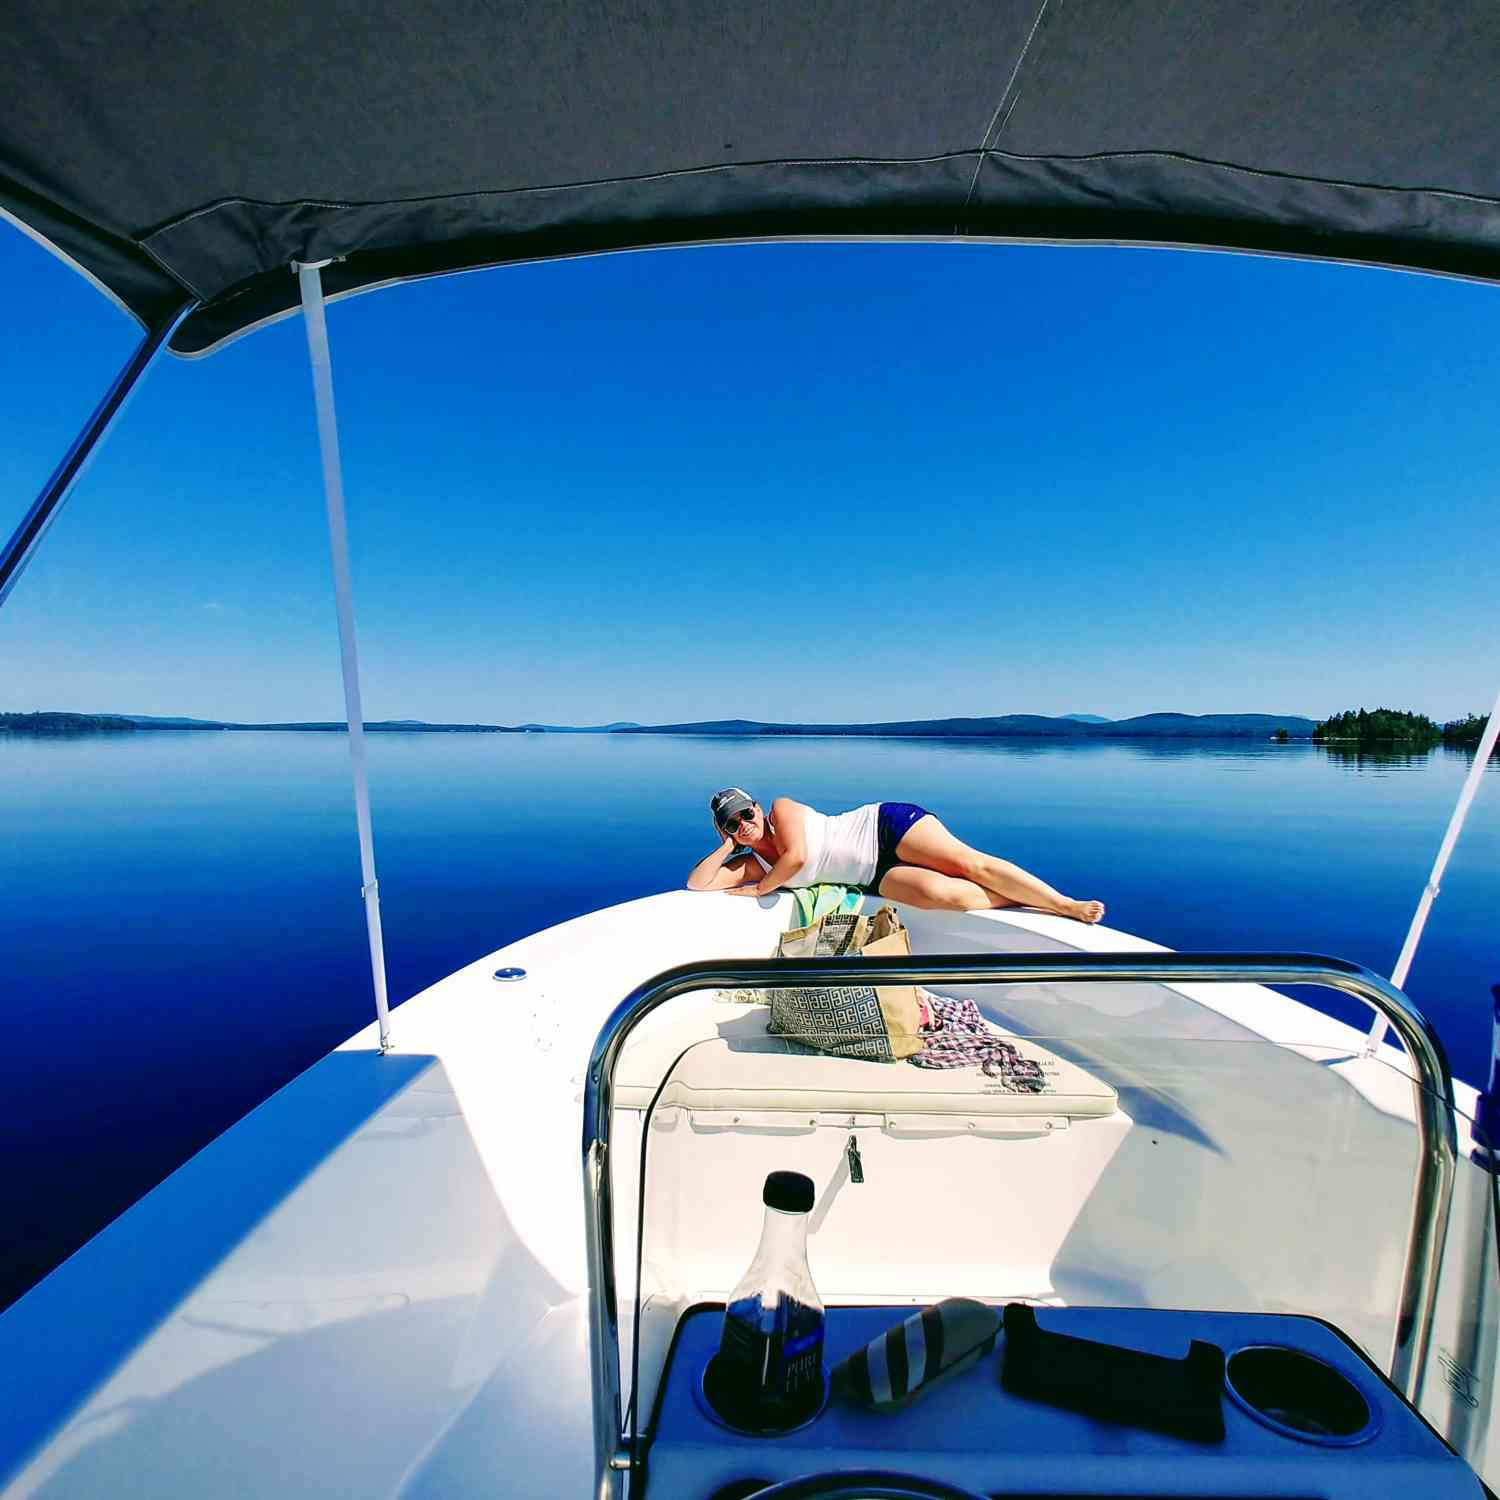 Title: Moosehead Lake Glass - On board their Sportsman Island Reef 19 Center Console - Location: Beaver Cove, ME. Participating in the Photo Contest #SportsmanAugust2018